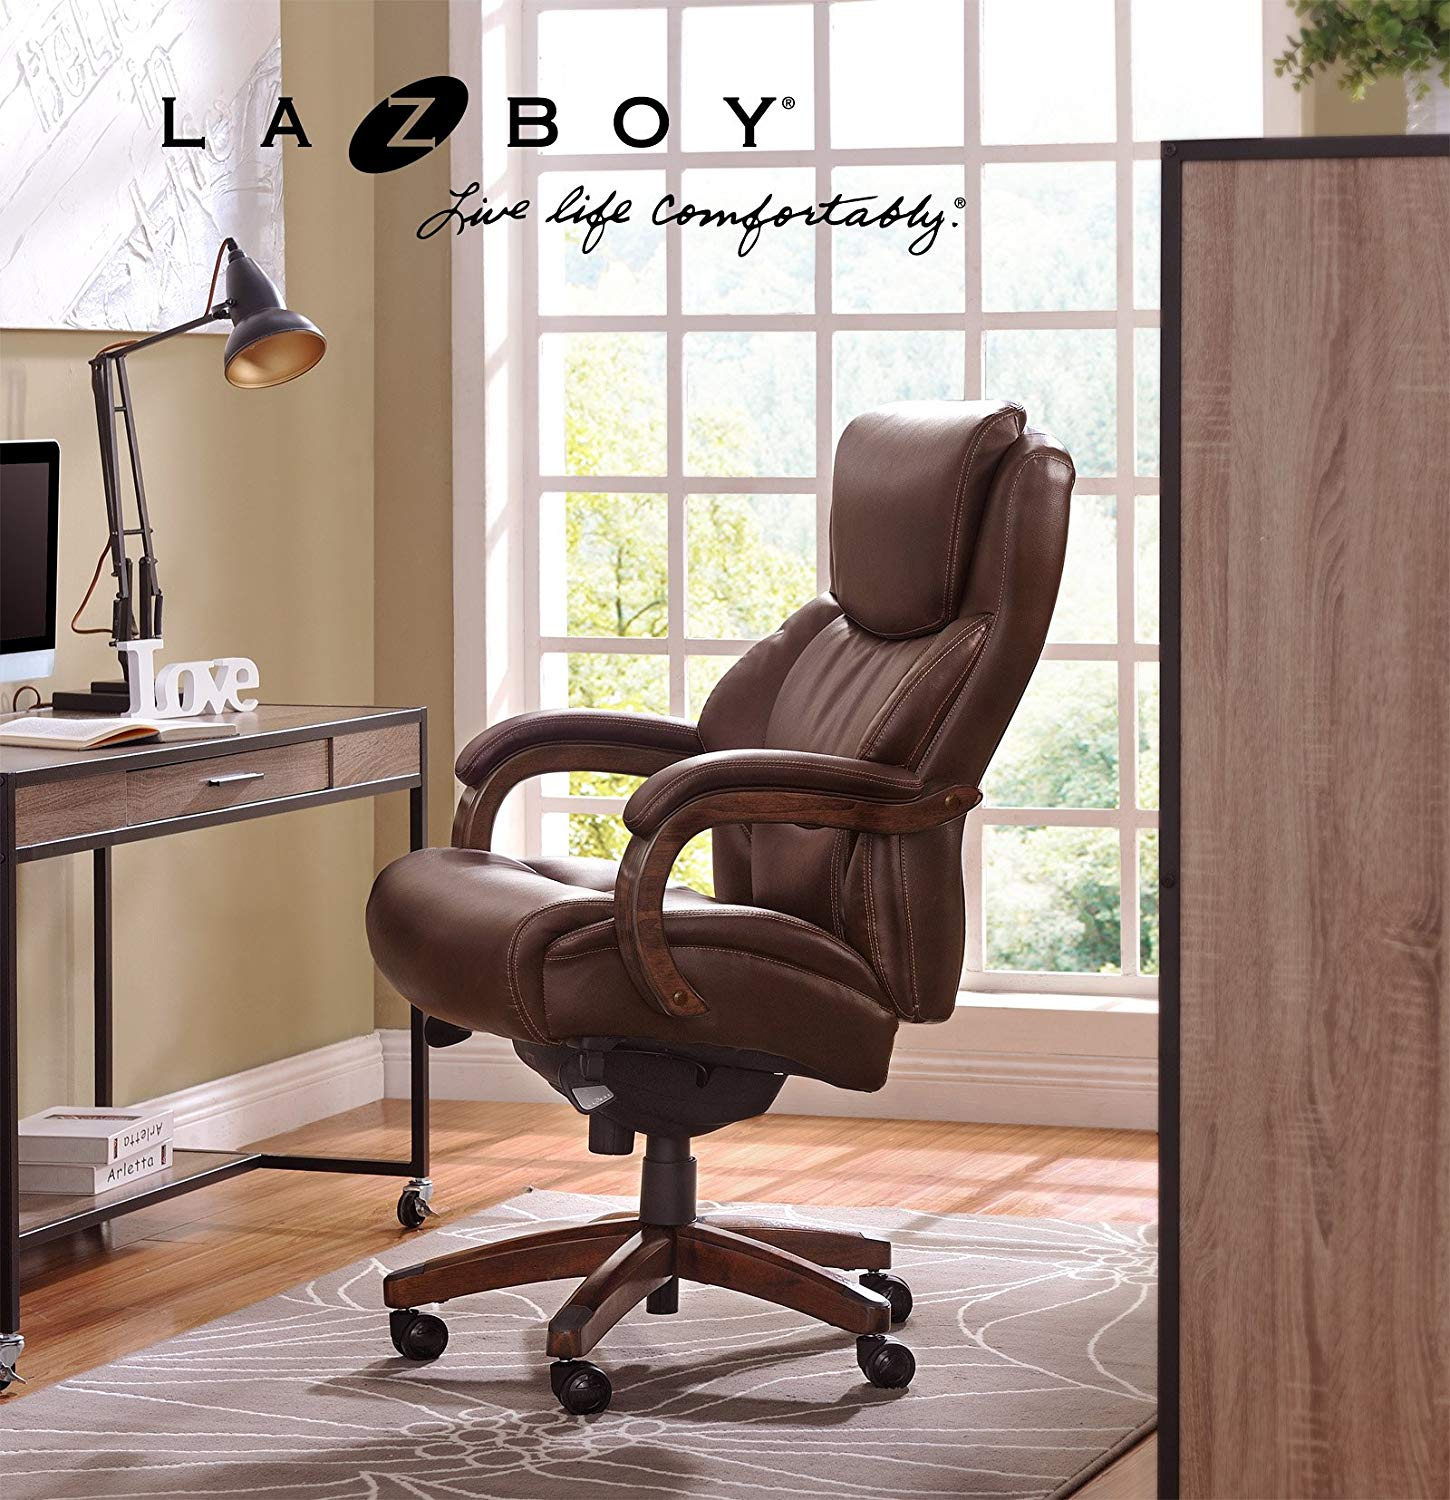 La-Z-Boy Delano Big & Tall Executive Bonded Leather Office Chair - Executive Chairs